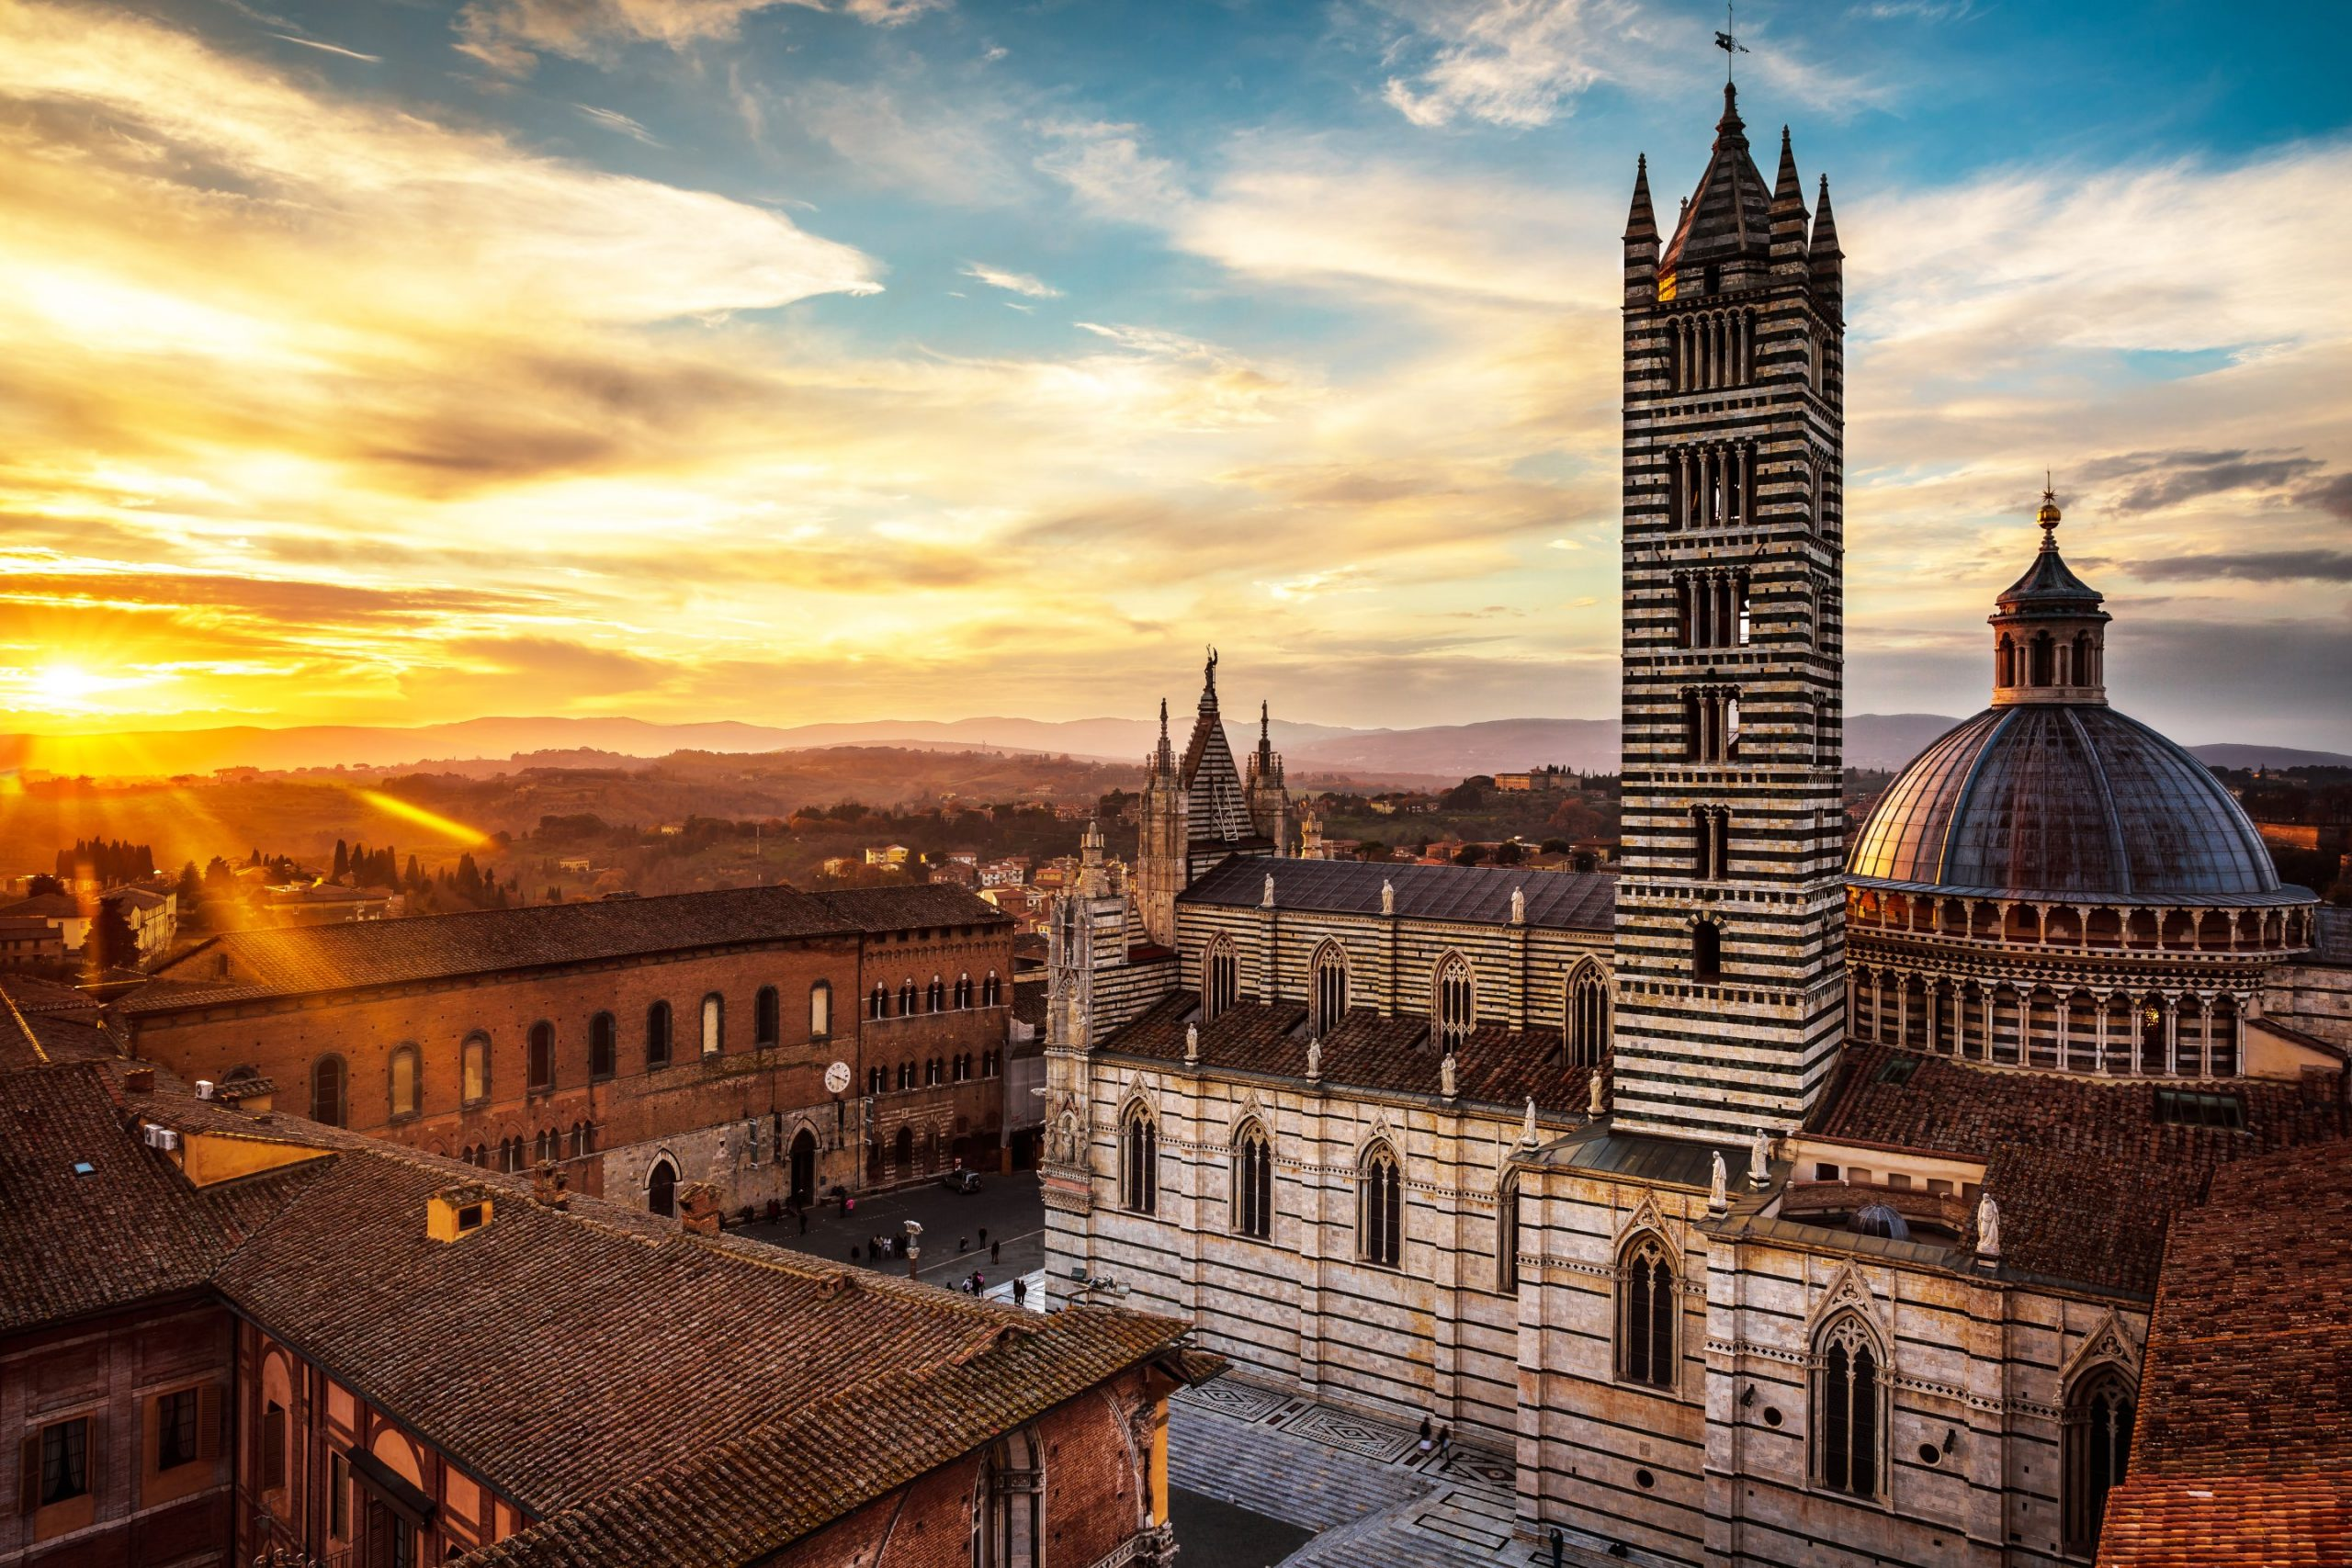 Sunset over Siena